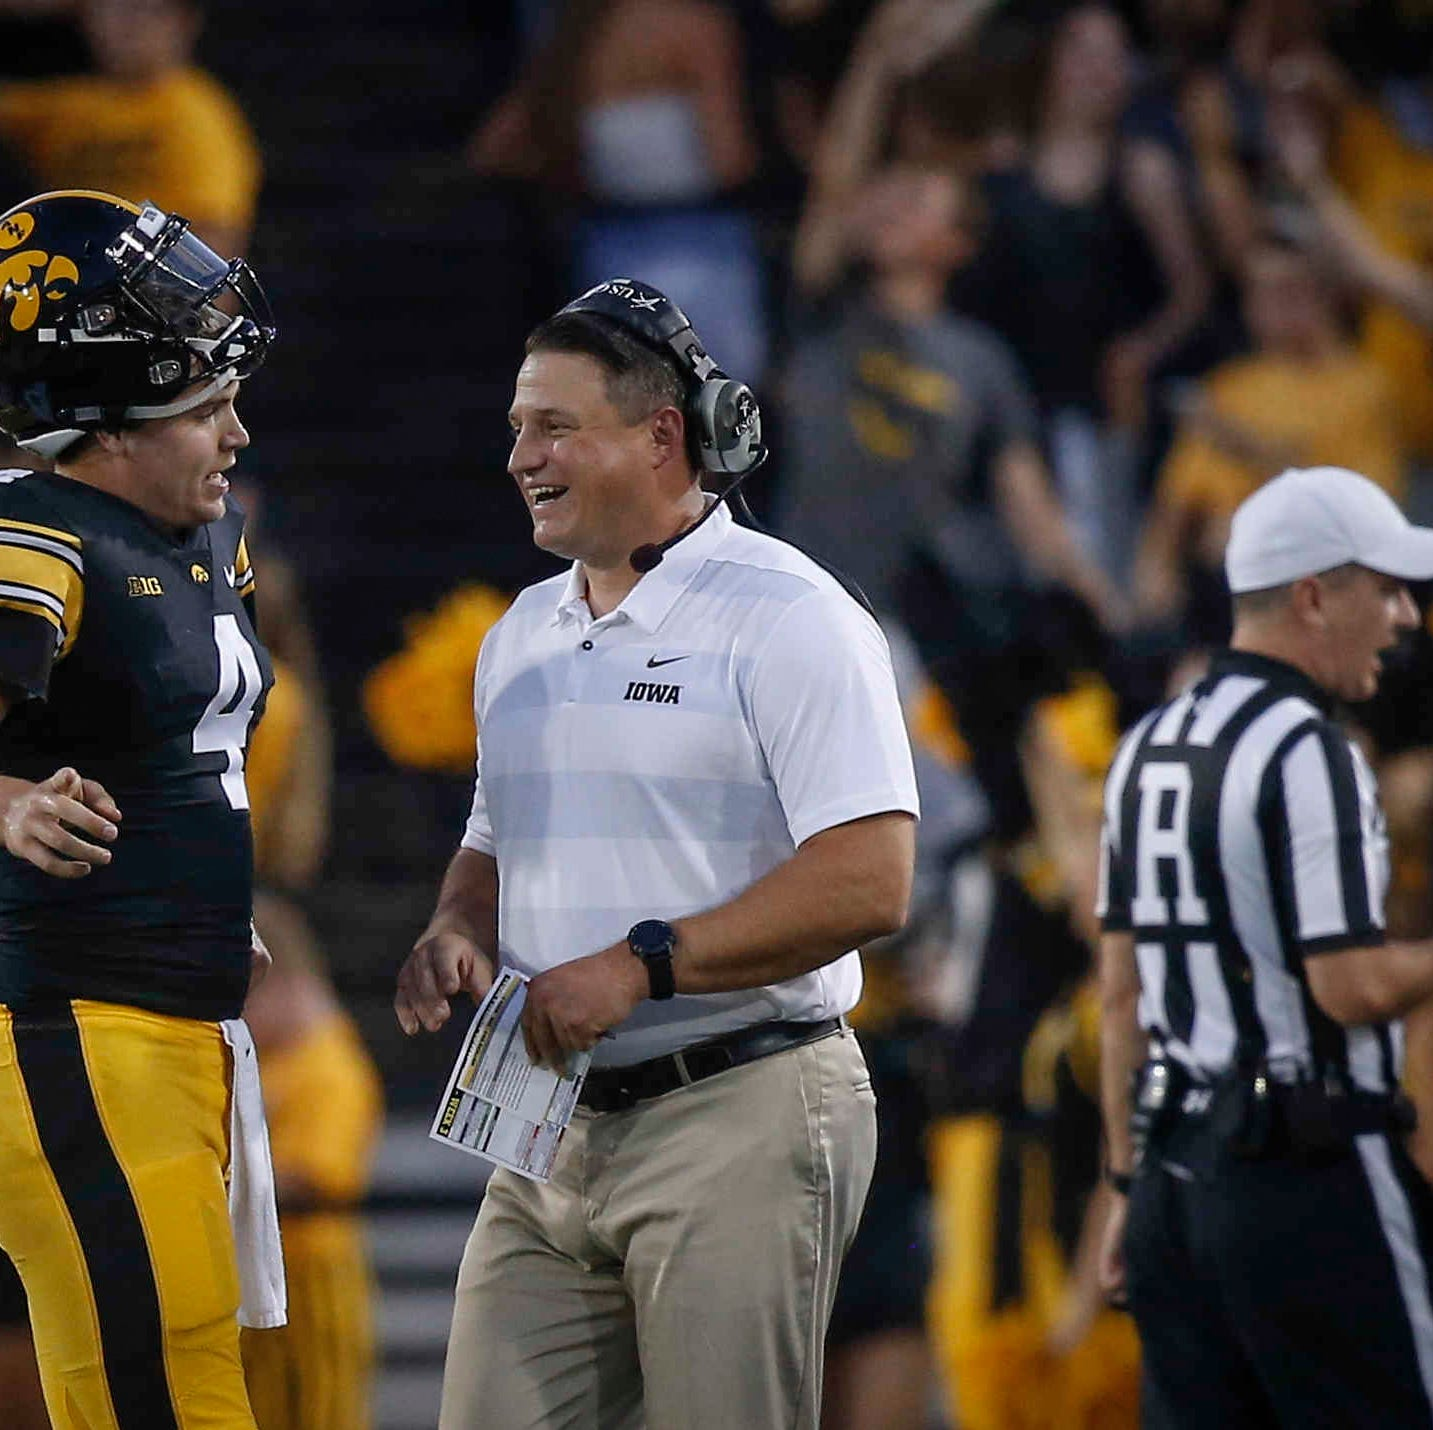 Leistikow's DVR Monday: The keys to Iowa offense's most productive day under Brian Ferentz